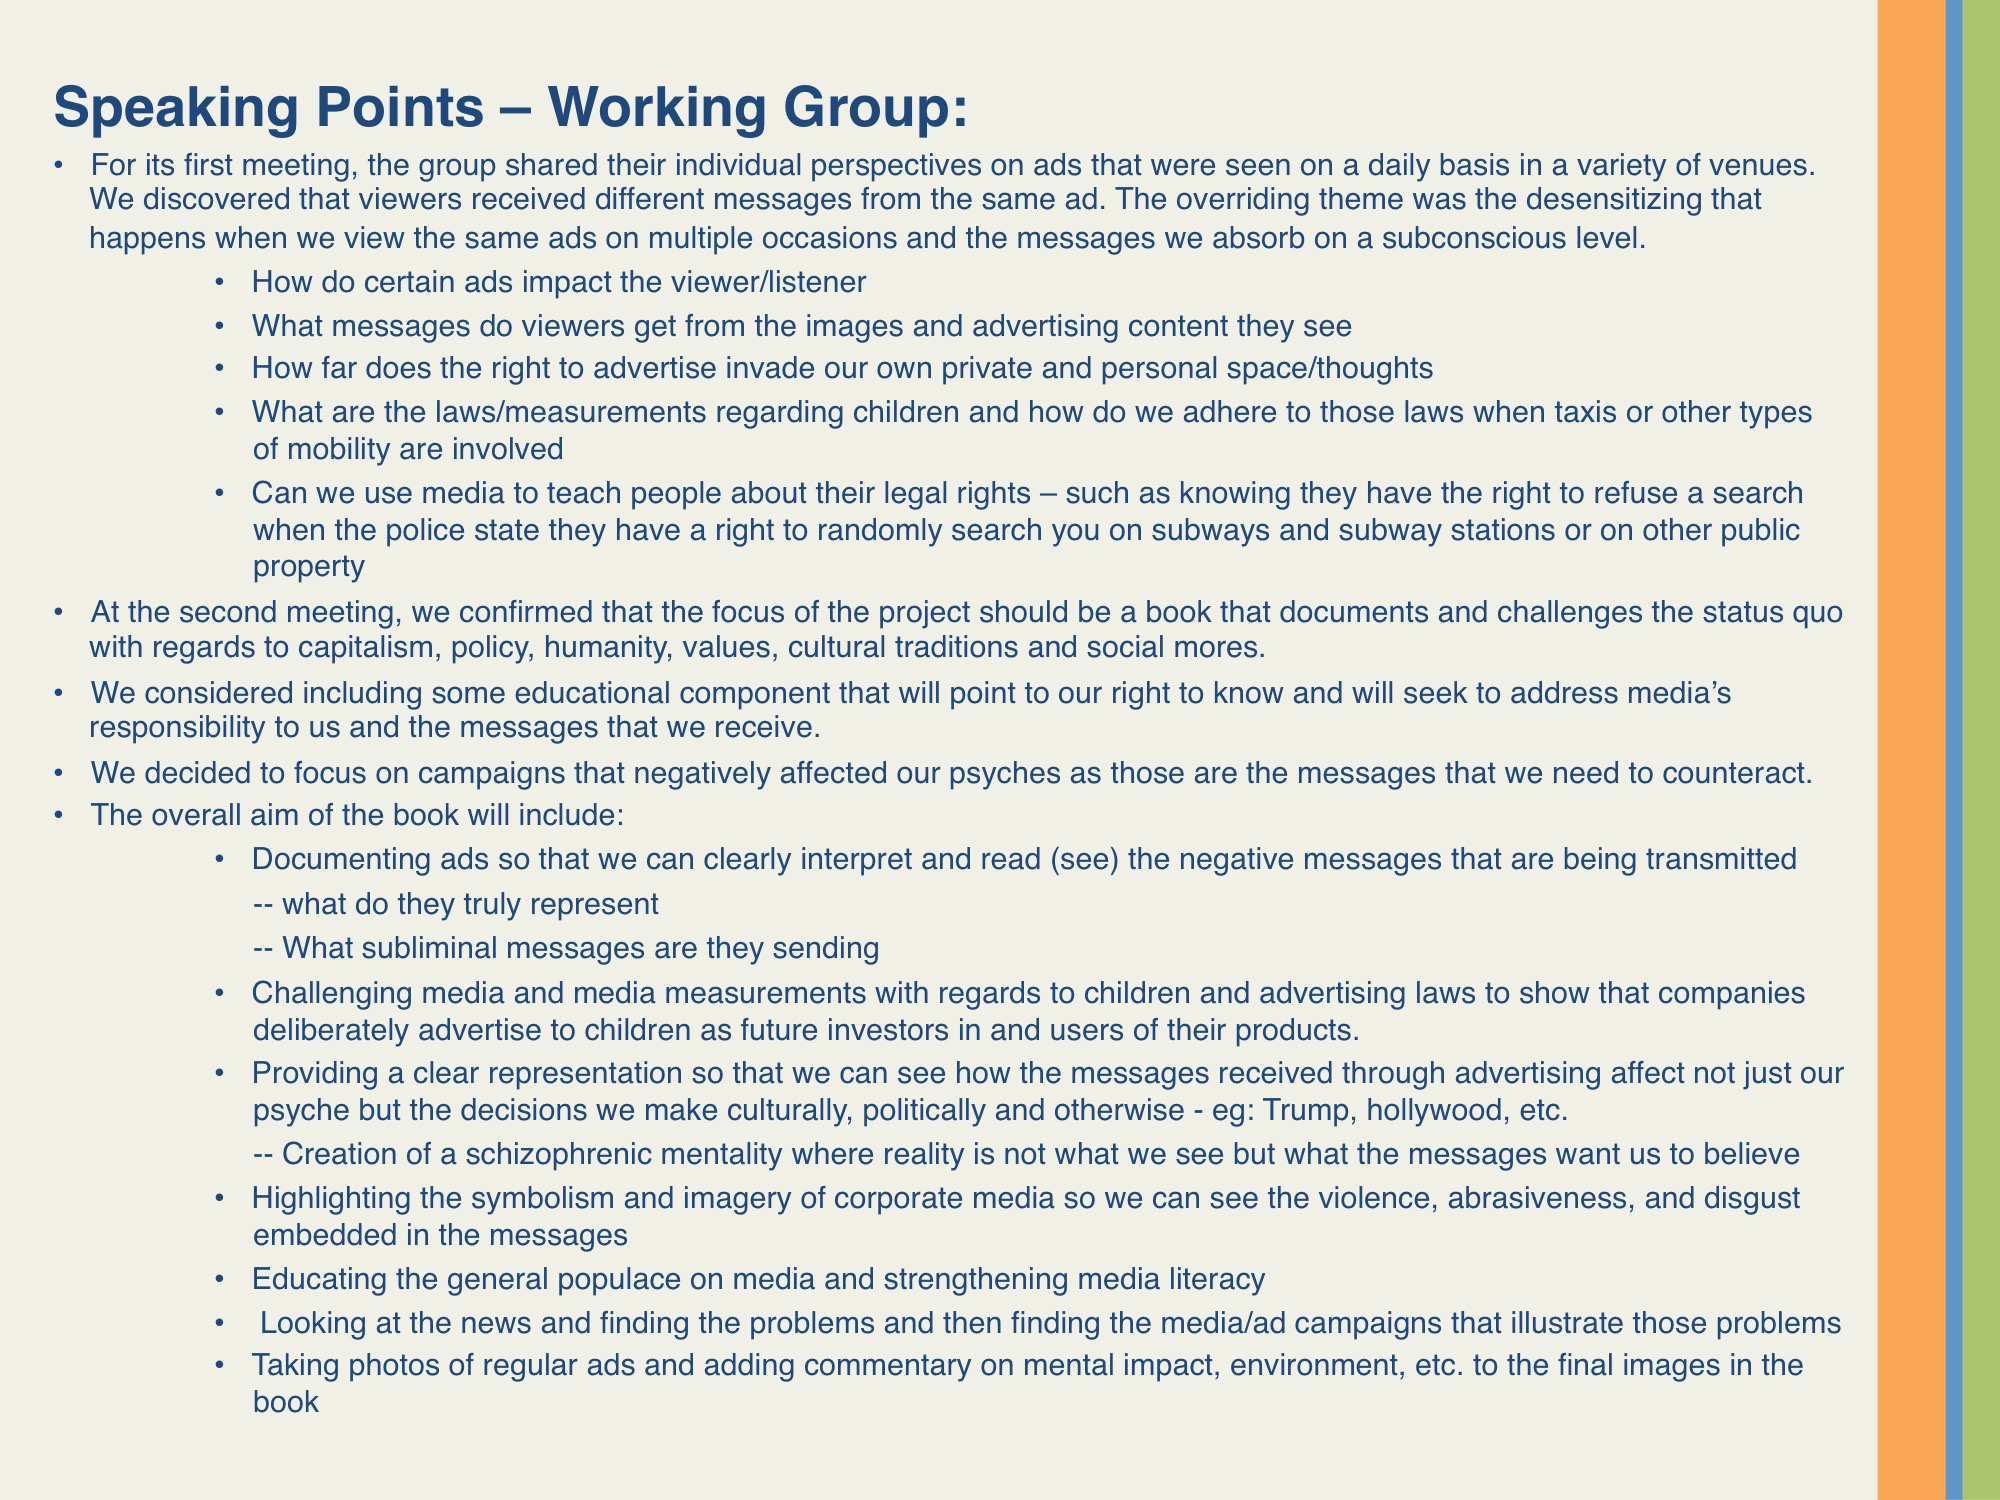 PP Monday Edited FINAL Speaking points_2017_0619 2-002.jpeg